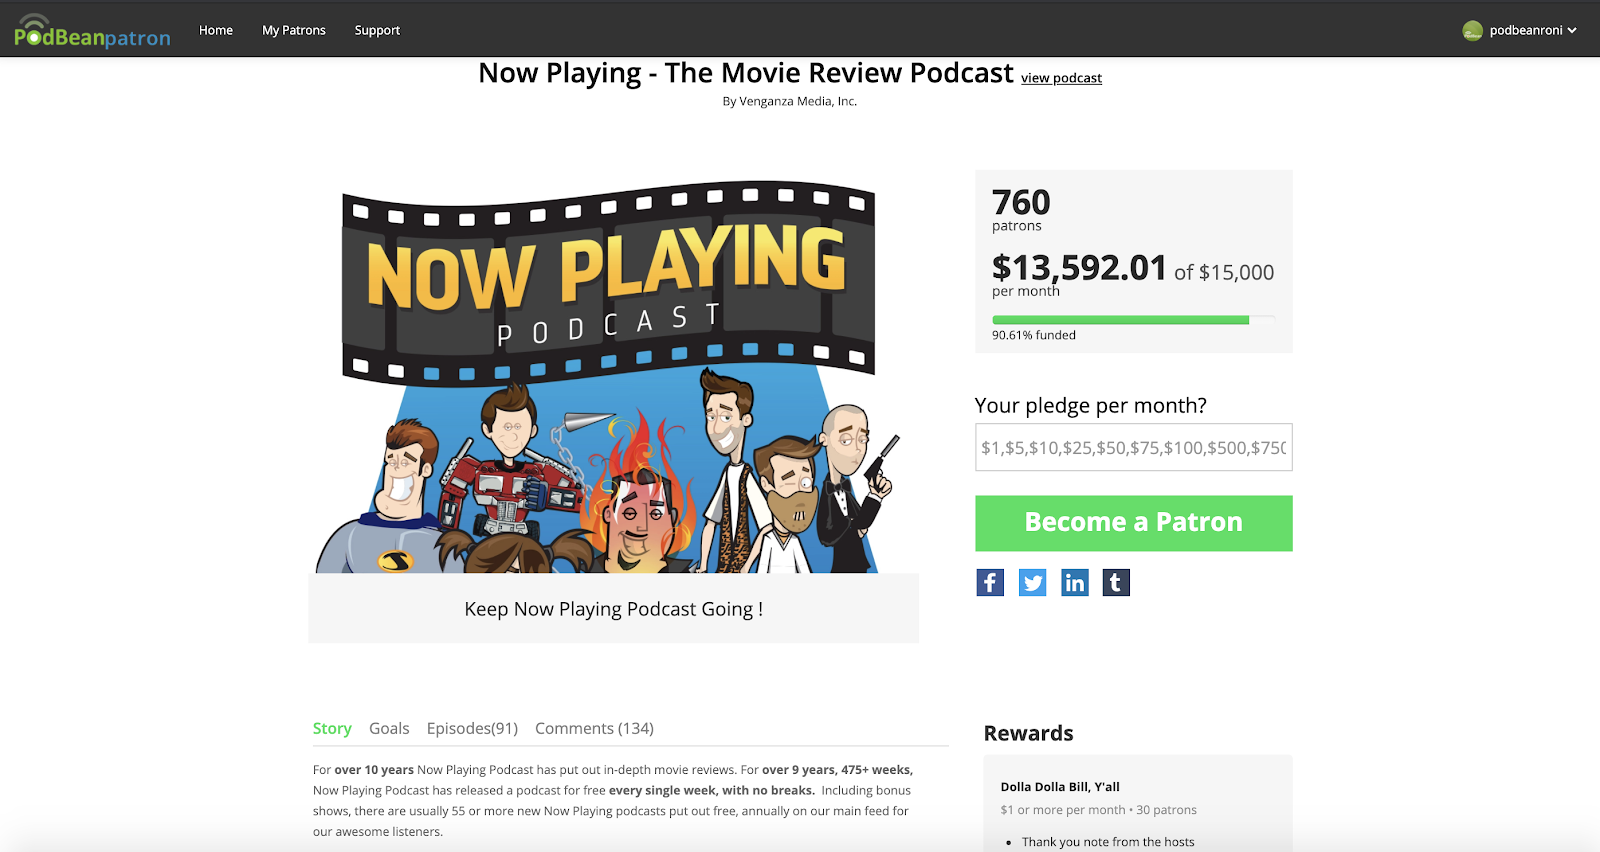 How To Monetize Your Podcast with Podbean: this image displays a screencap of the Patron page for the podcast Now Playing, which receives $13,592.01 a month.